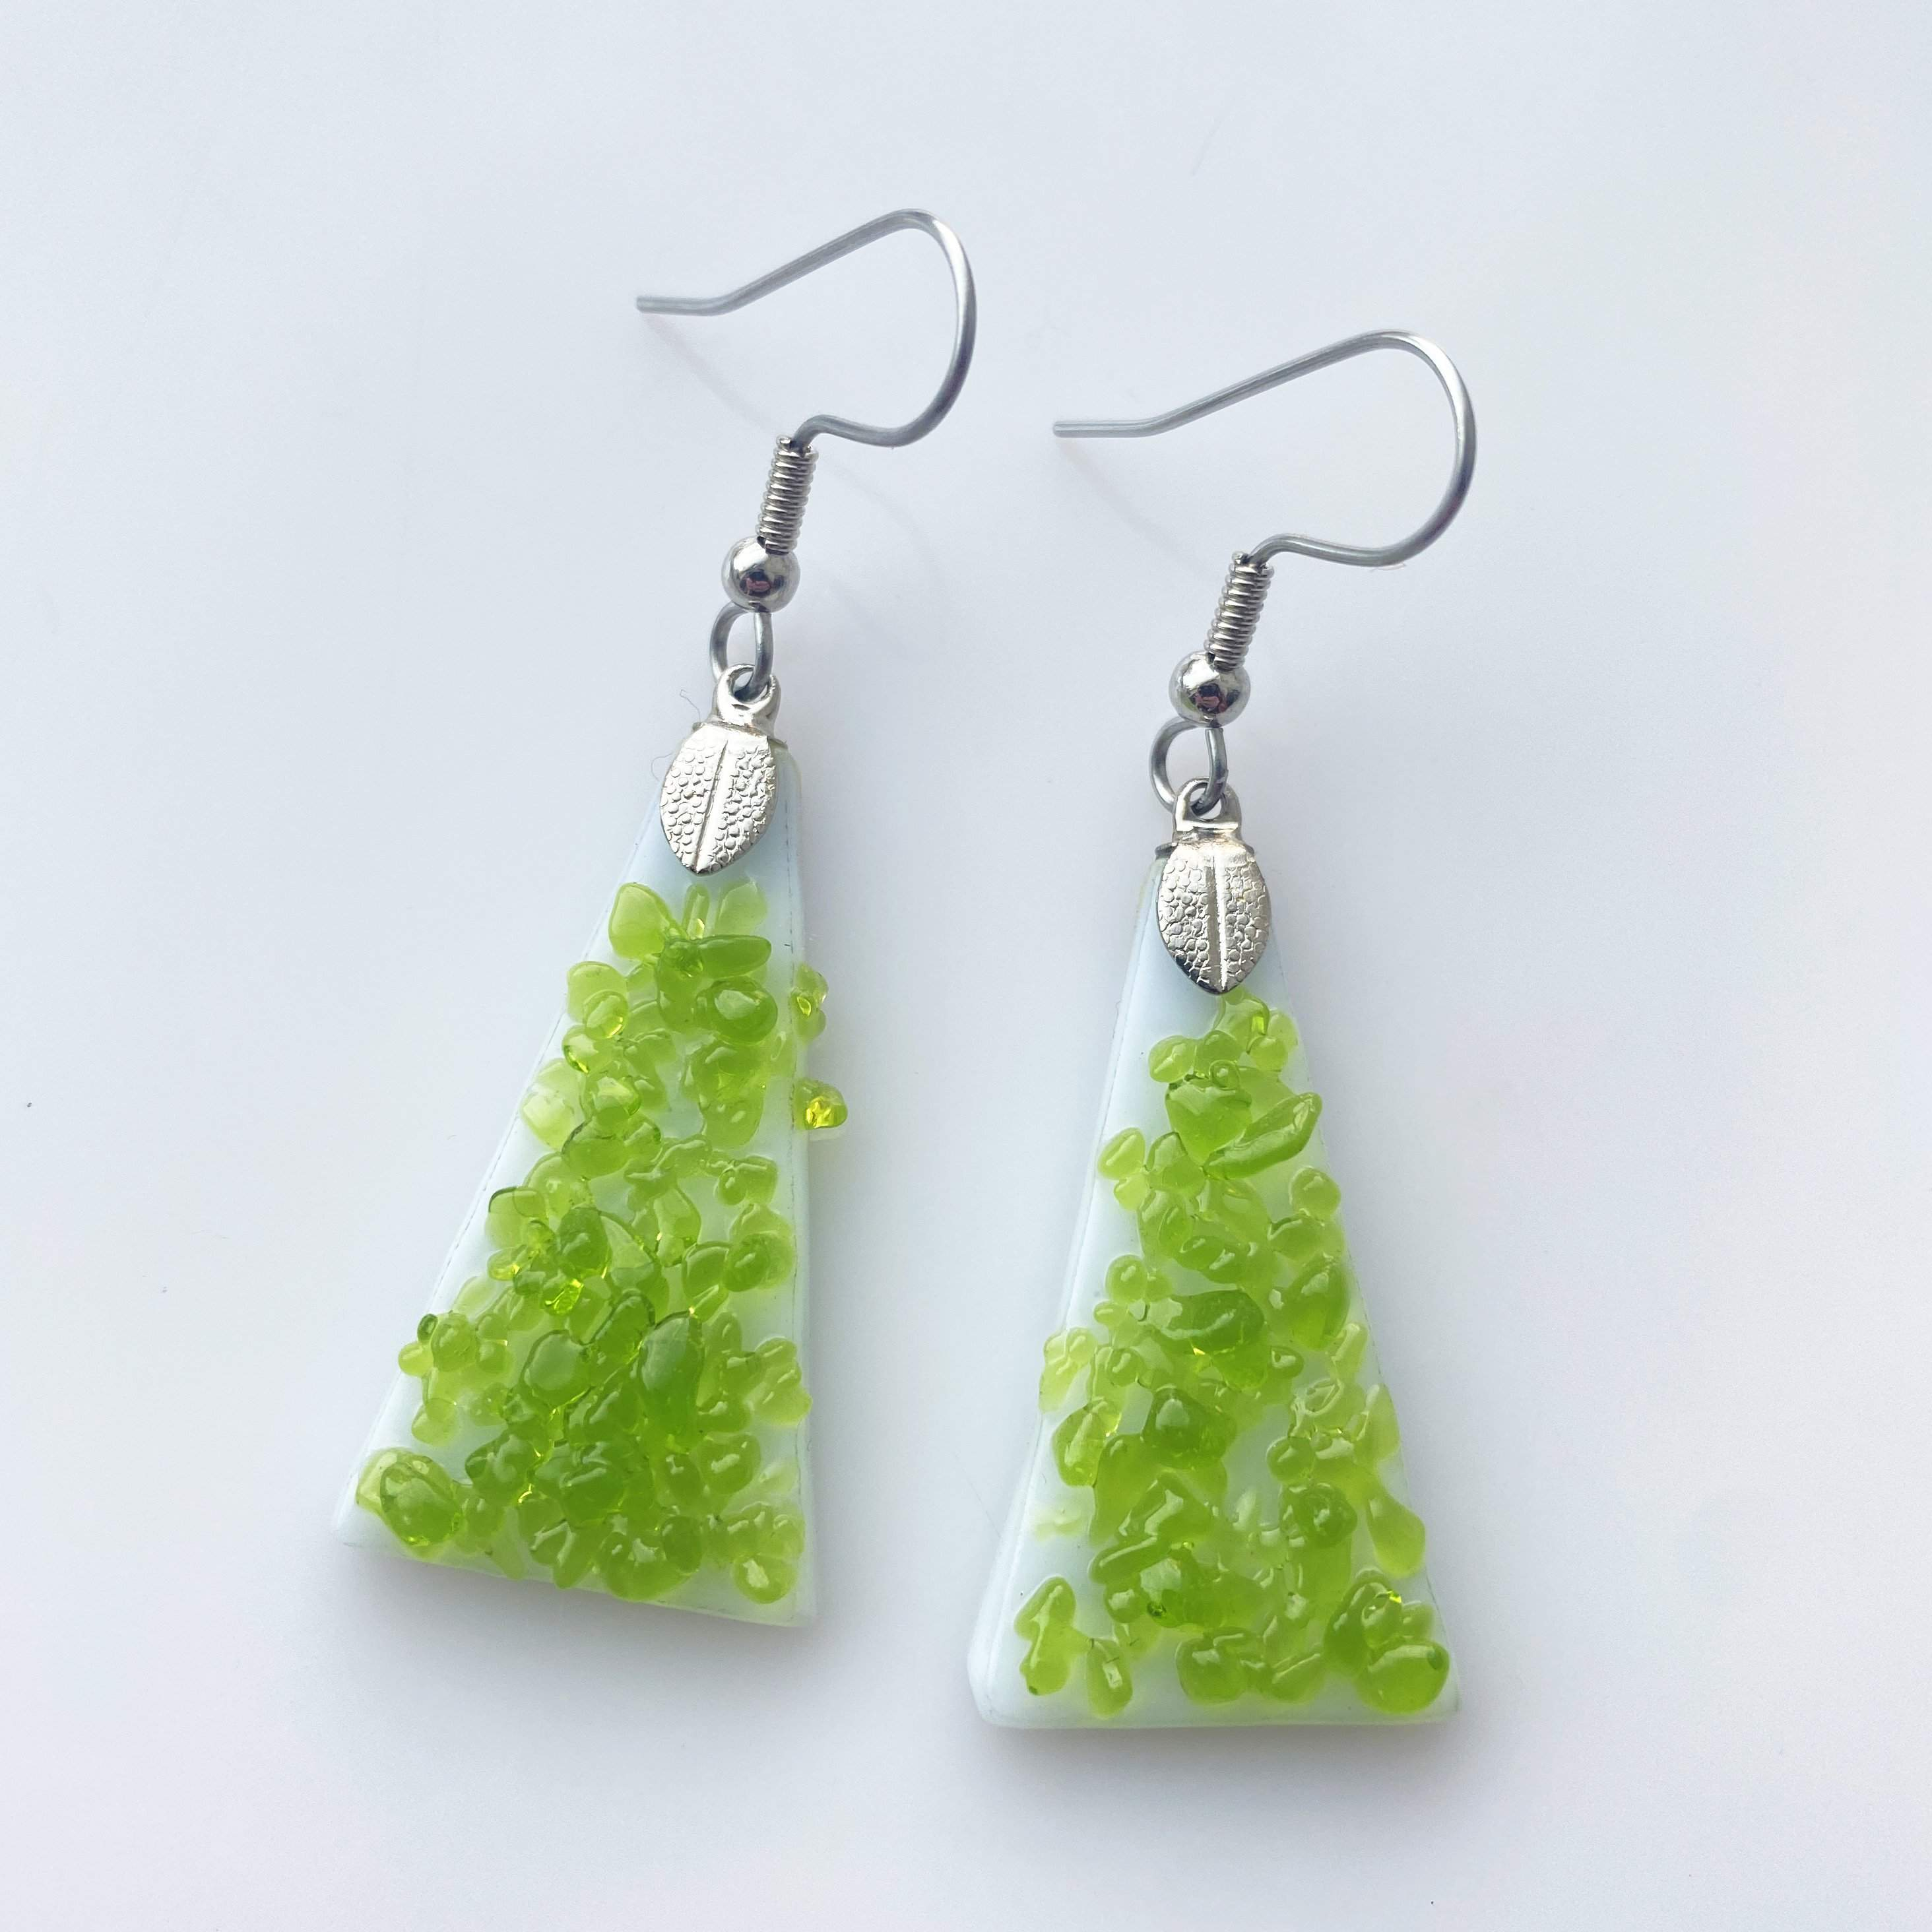 Upcycled White and Green Fused Glass Earrings